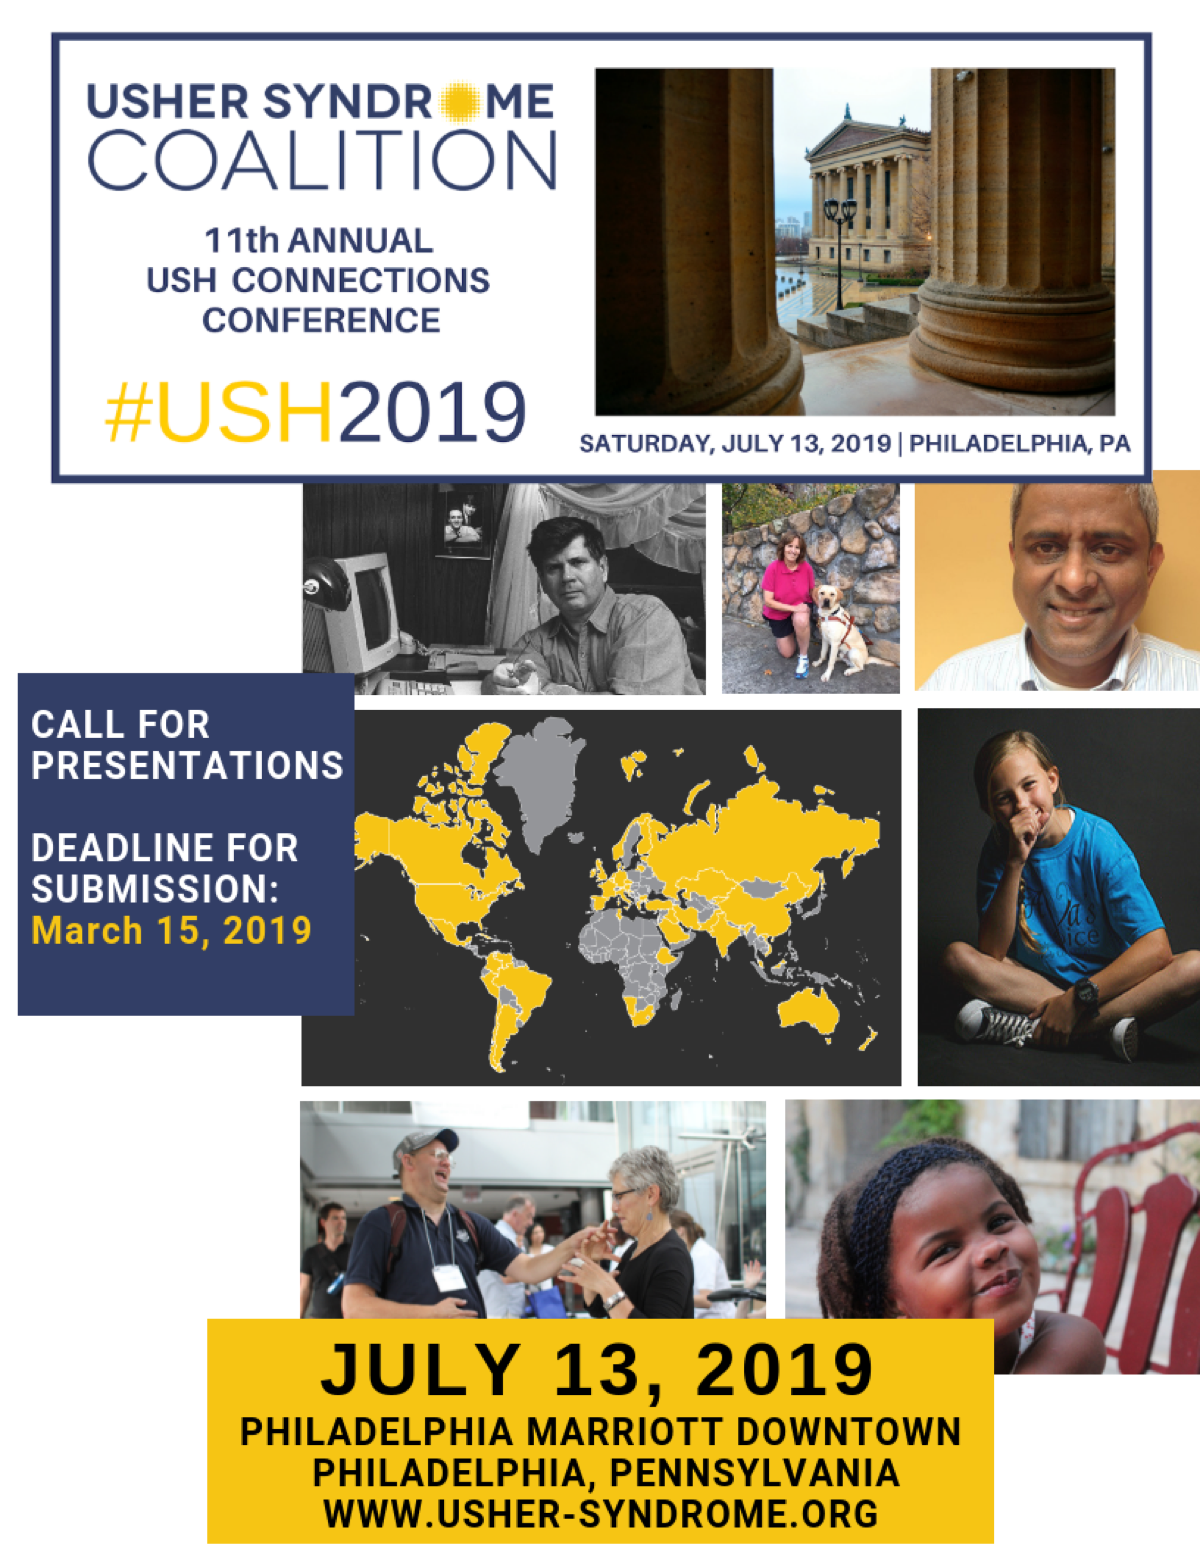 Cover Image for USH2019 Call for Presentations Form: Usher Syndrome Coalition 11th Annual USH Connections Conference, #USH2019, Saturday, July 13, 2019, Philadelphia, PA, Call for Presentations Deadline for Submission: March 15, 2019